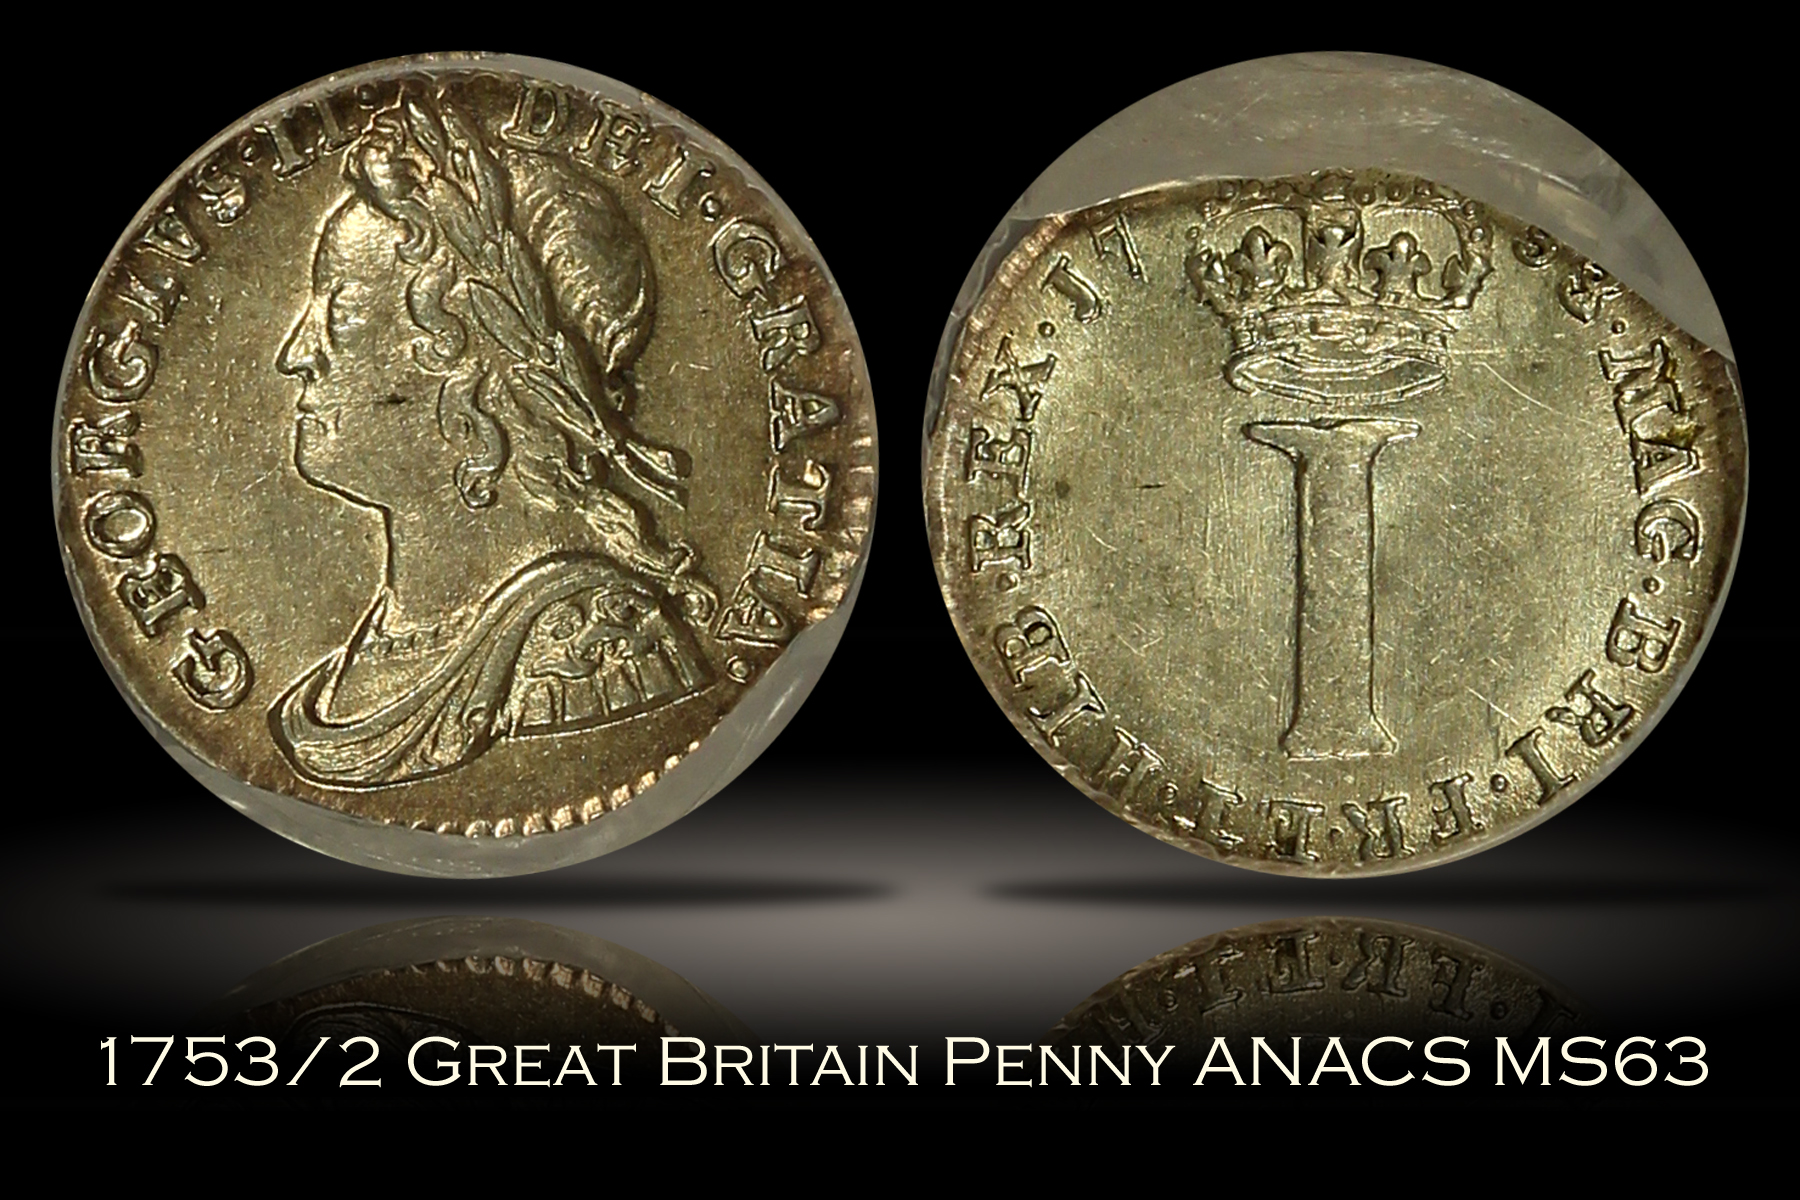 1753/2 Great Britain Penny ANACS MS63